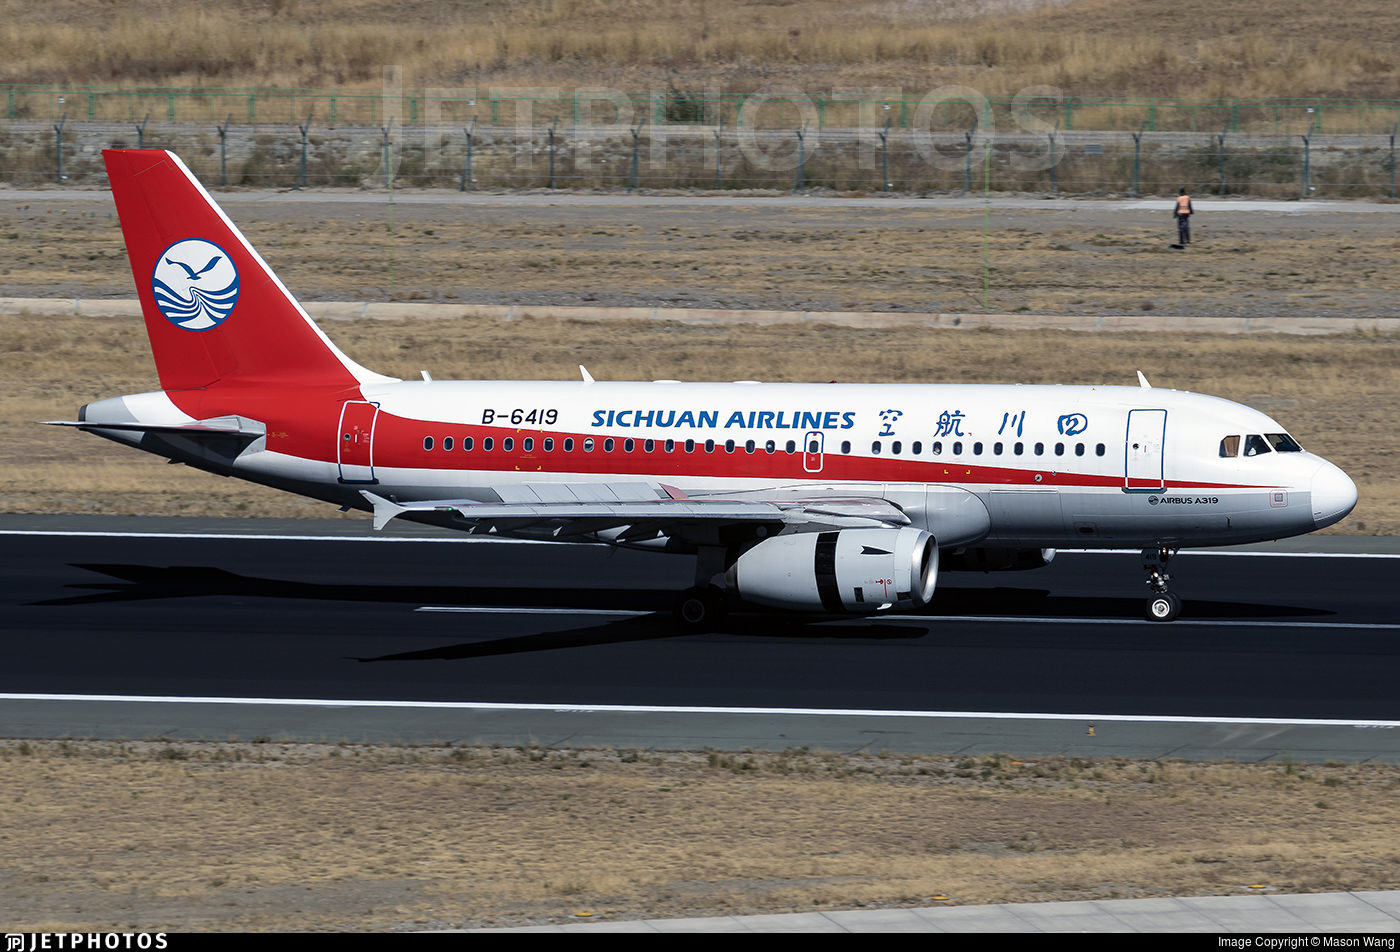 Sichuan Airlines A319